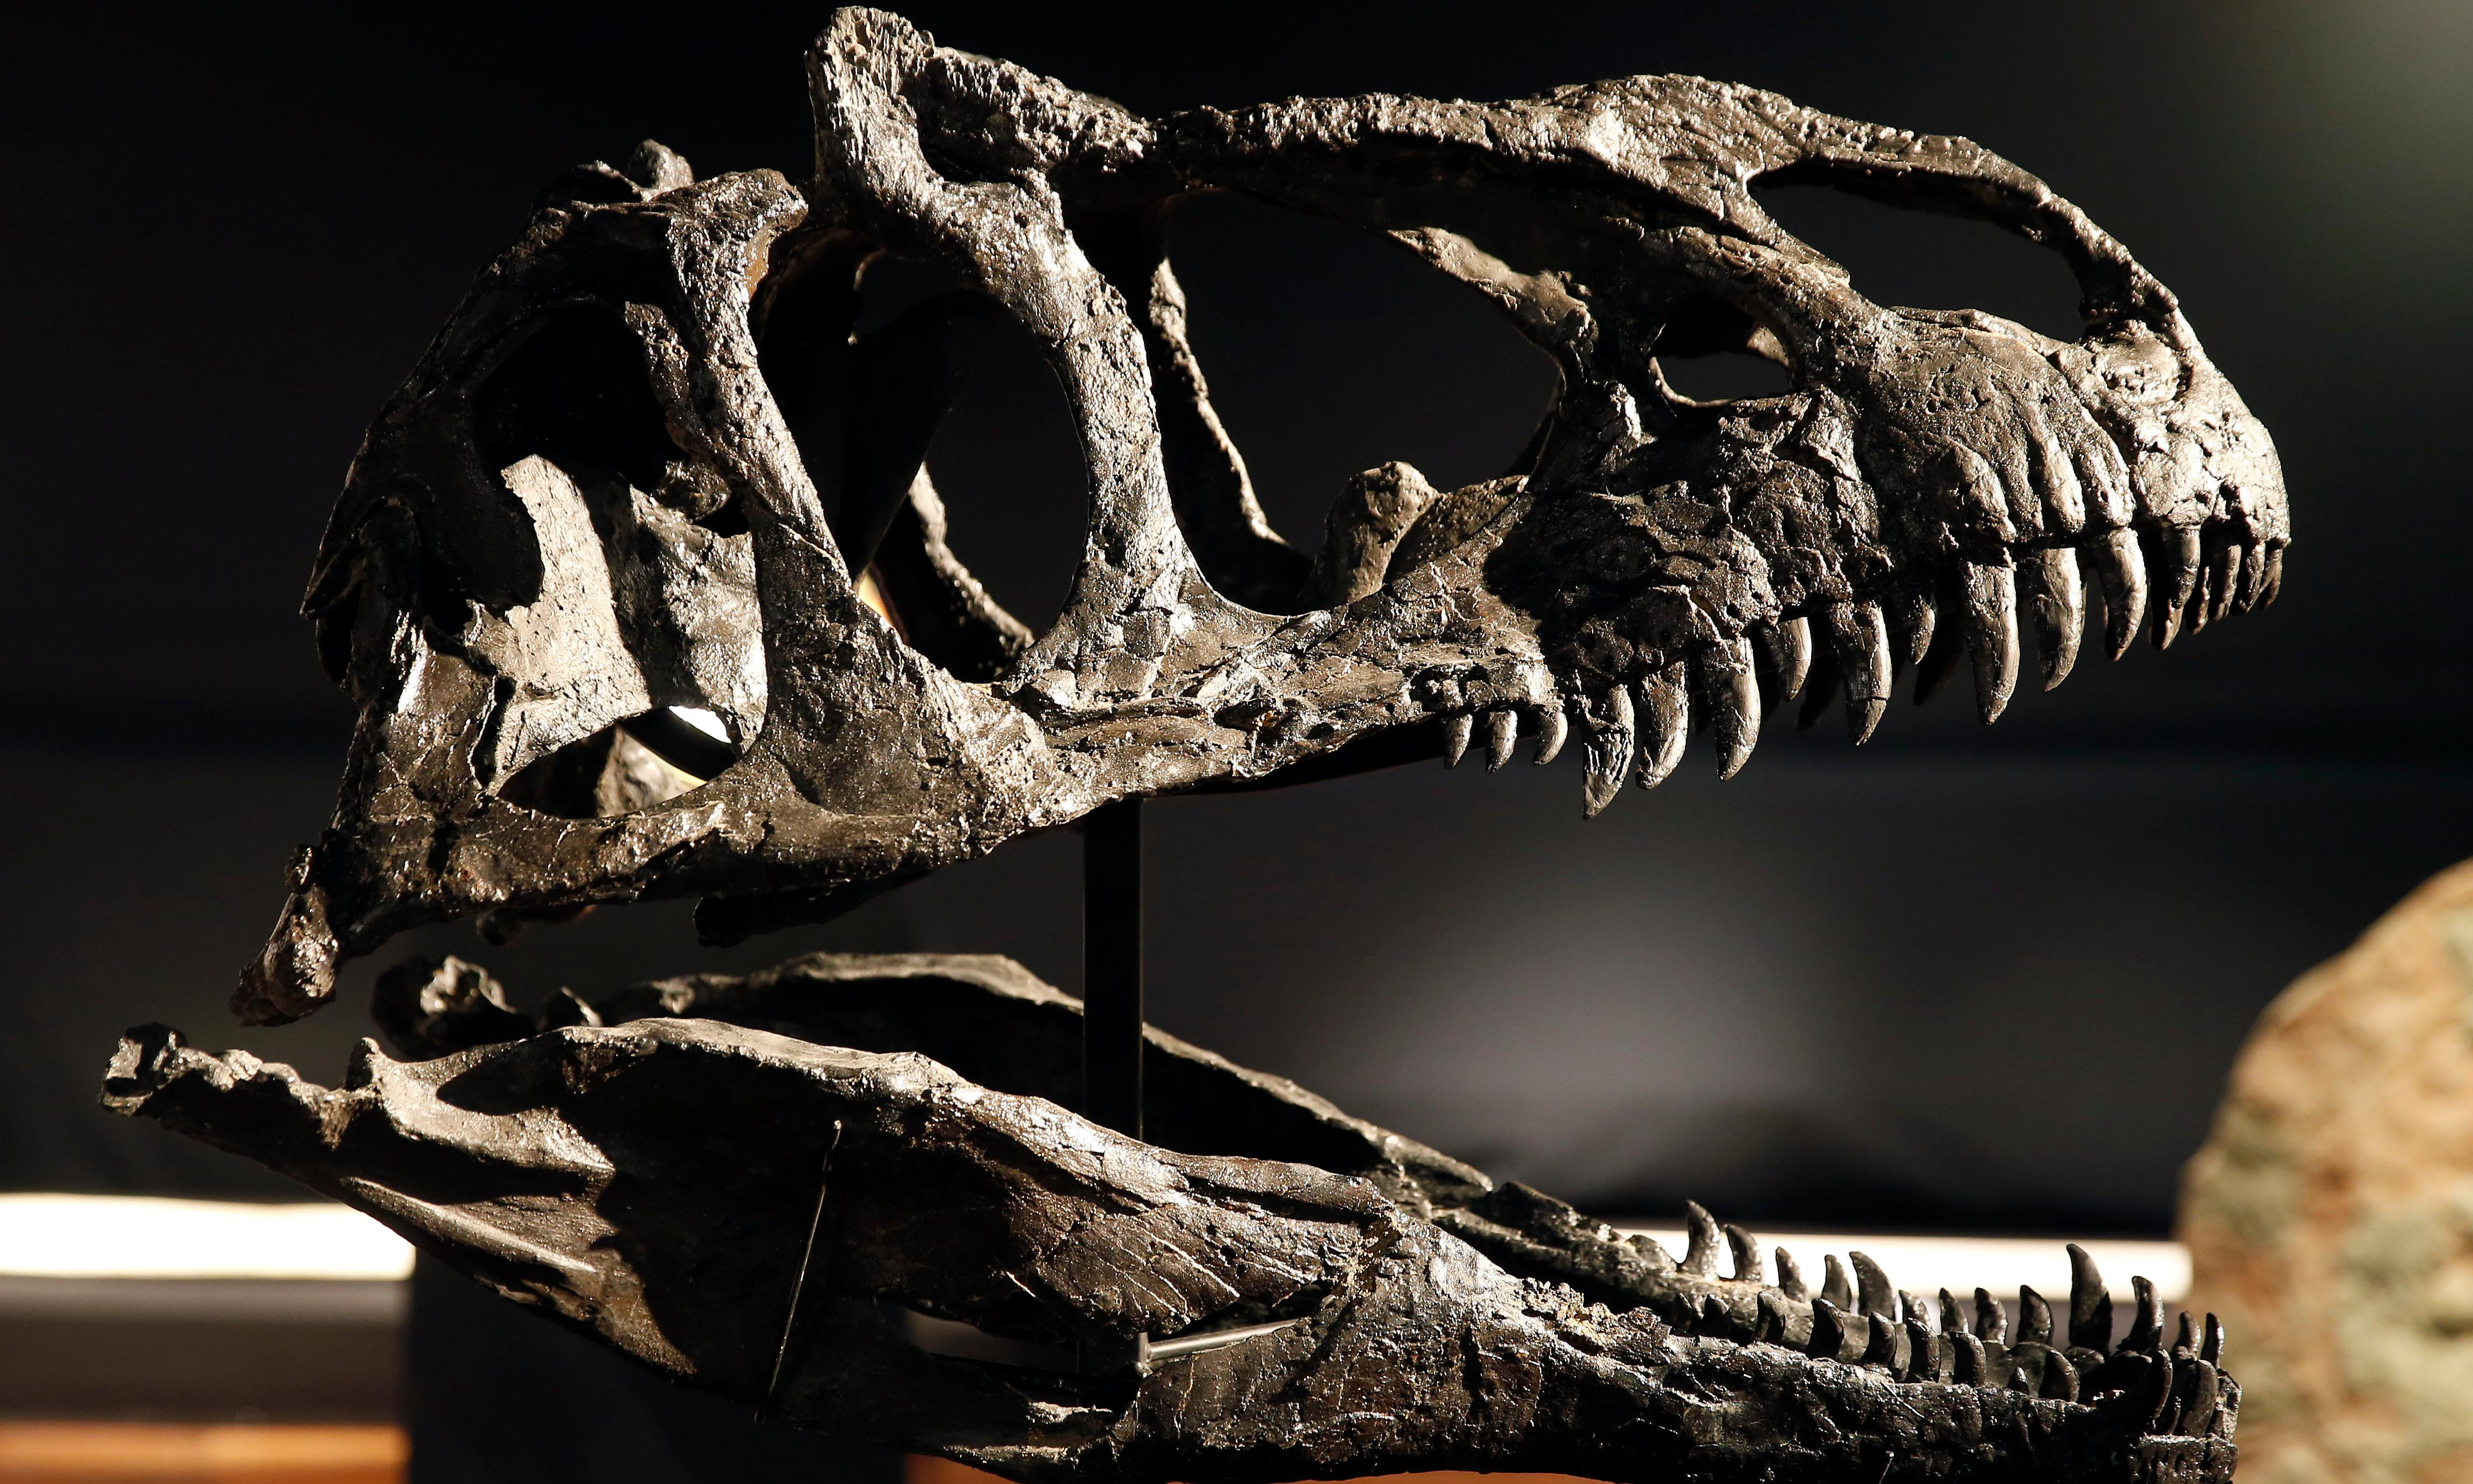 The Dinosaurs Rediscovered review – a transformation in our understanding